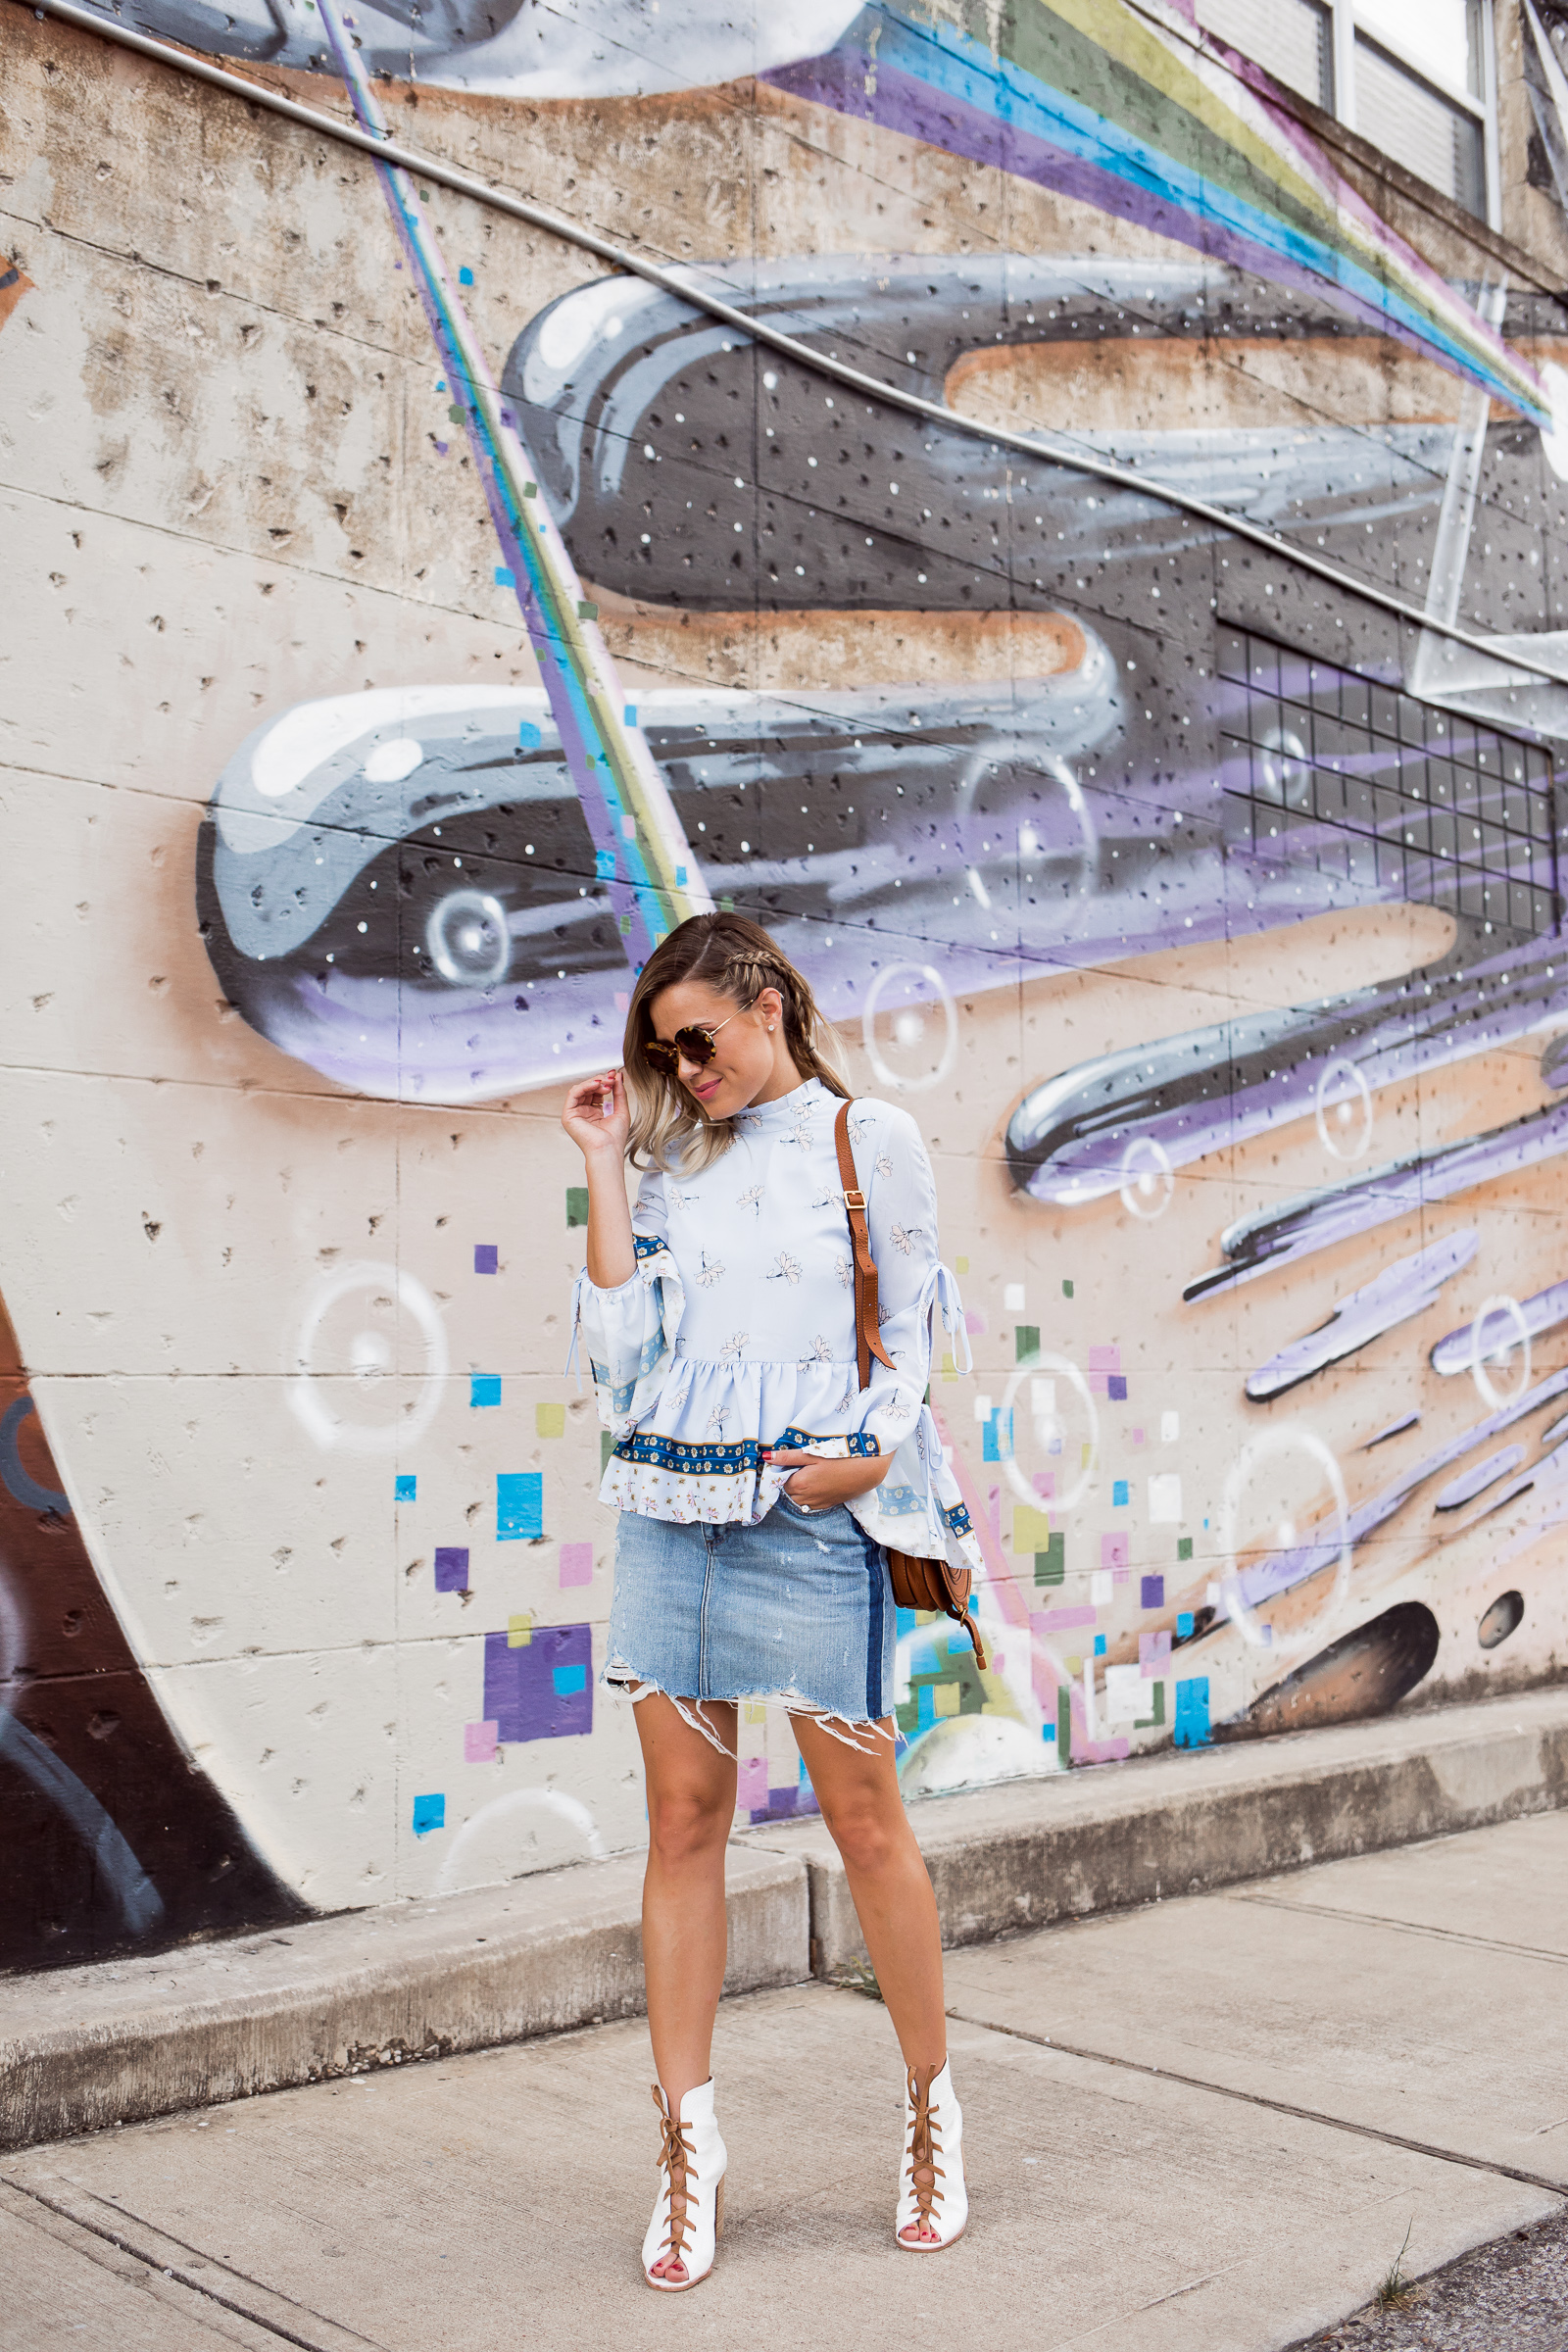 Houston fashion blogger Uptown with Elly Brown wears Kristin Cavallari white boots with a denim skirt.